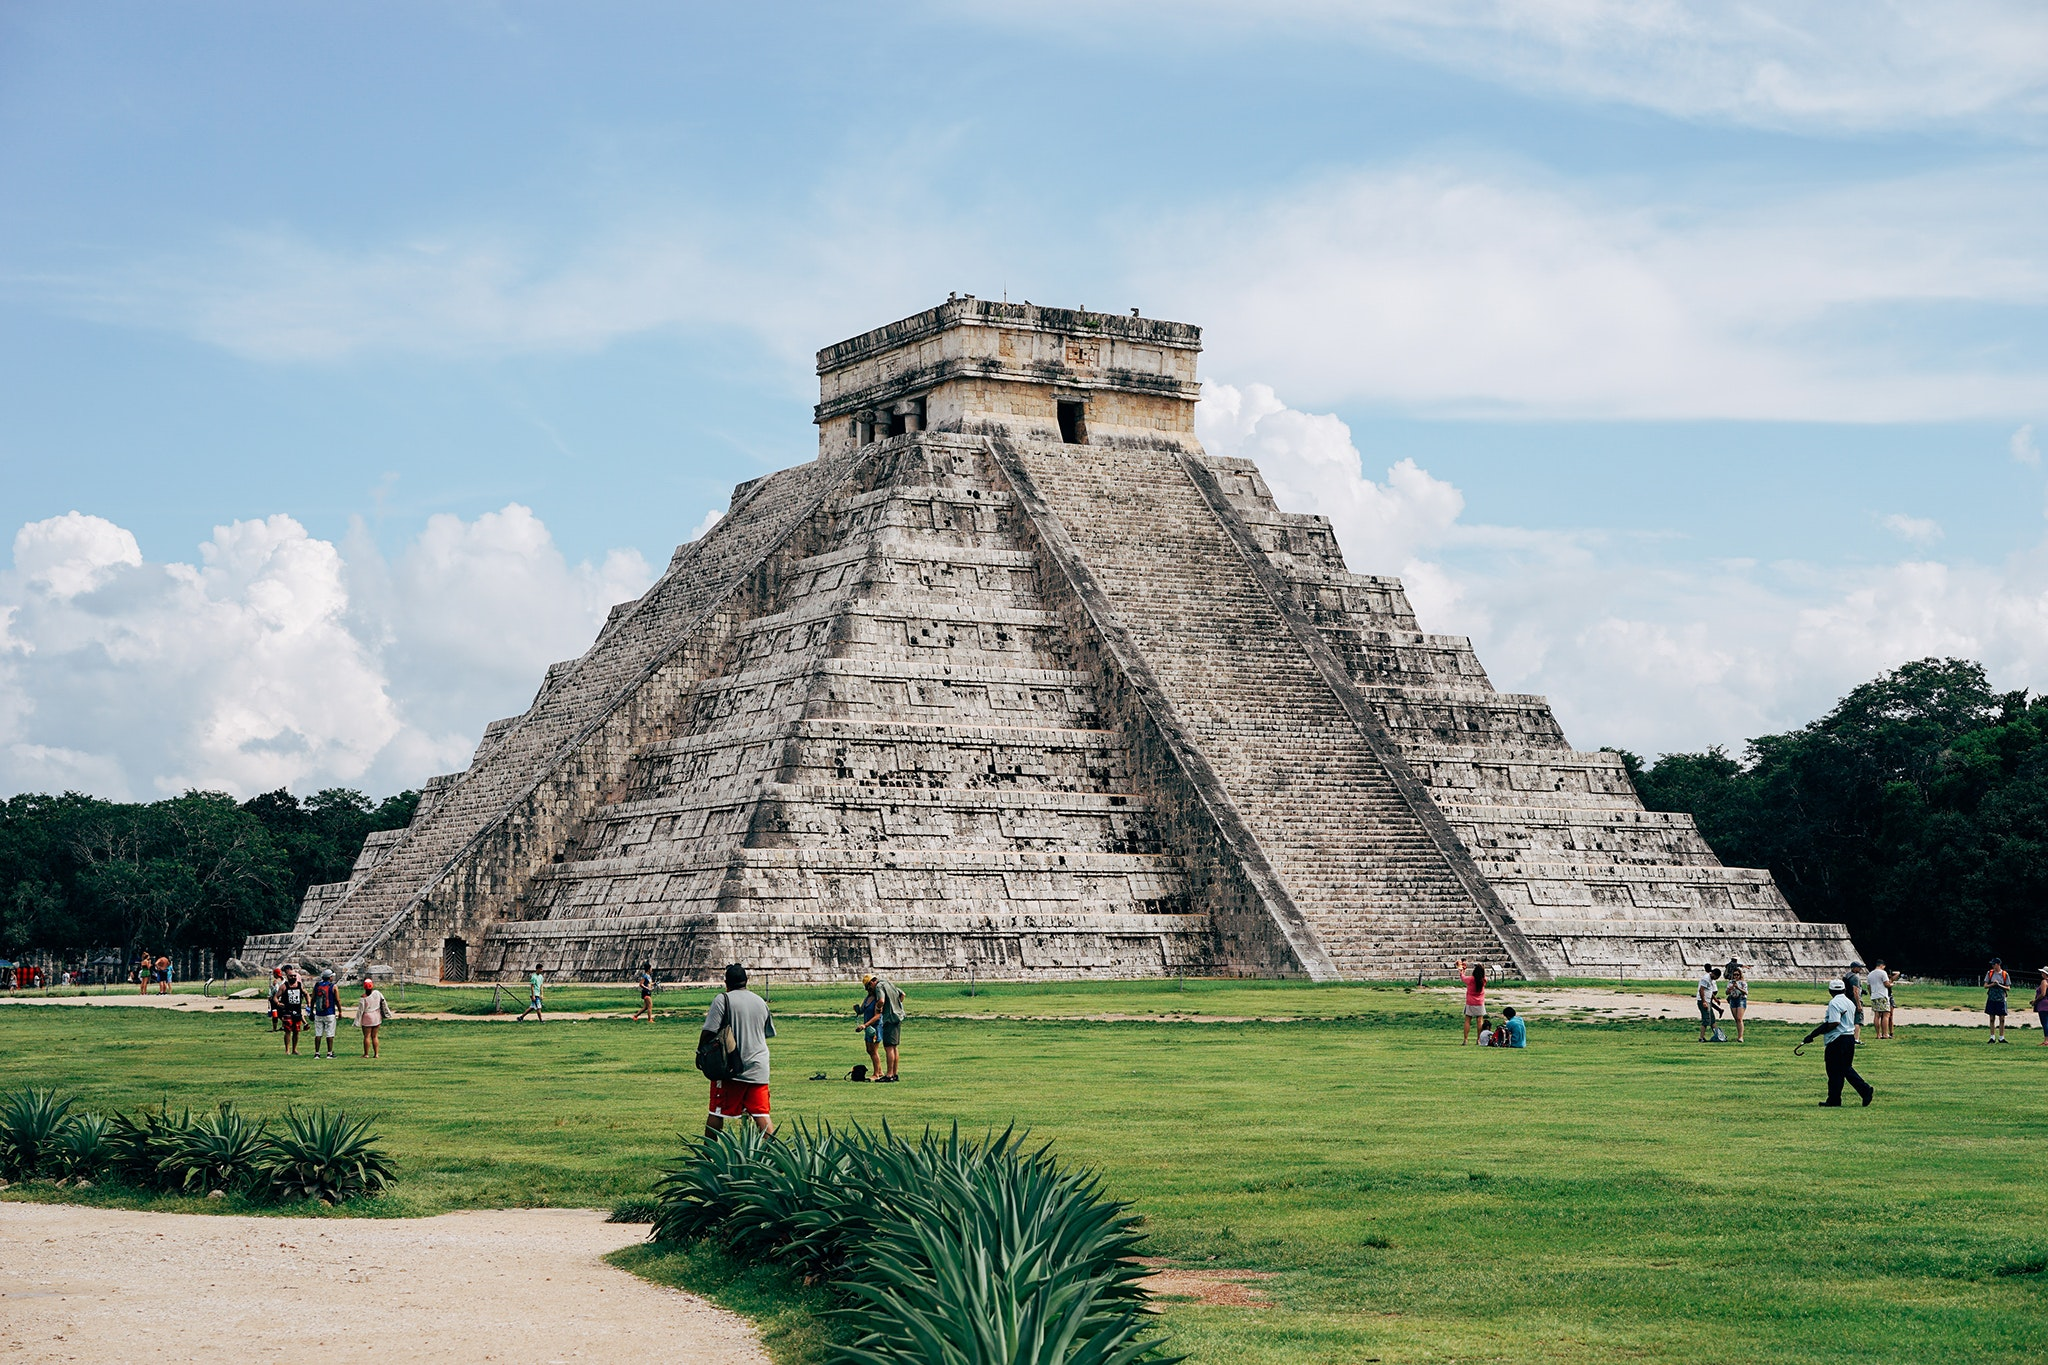 Chichén Itzá is located in close proximity to two cenotes (deep, limestone sinkholes that expose groundwater).